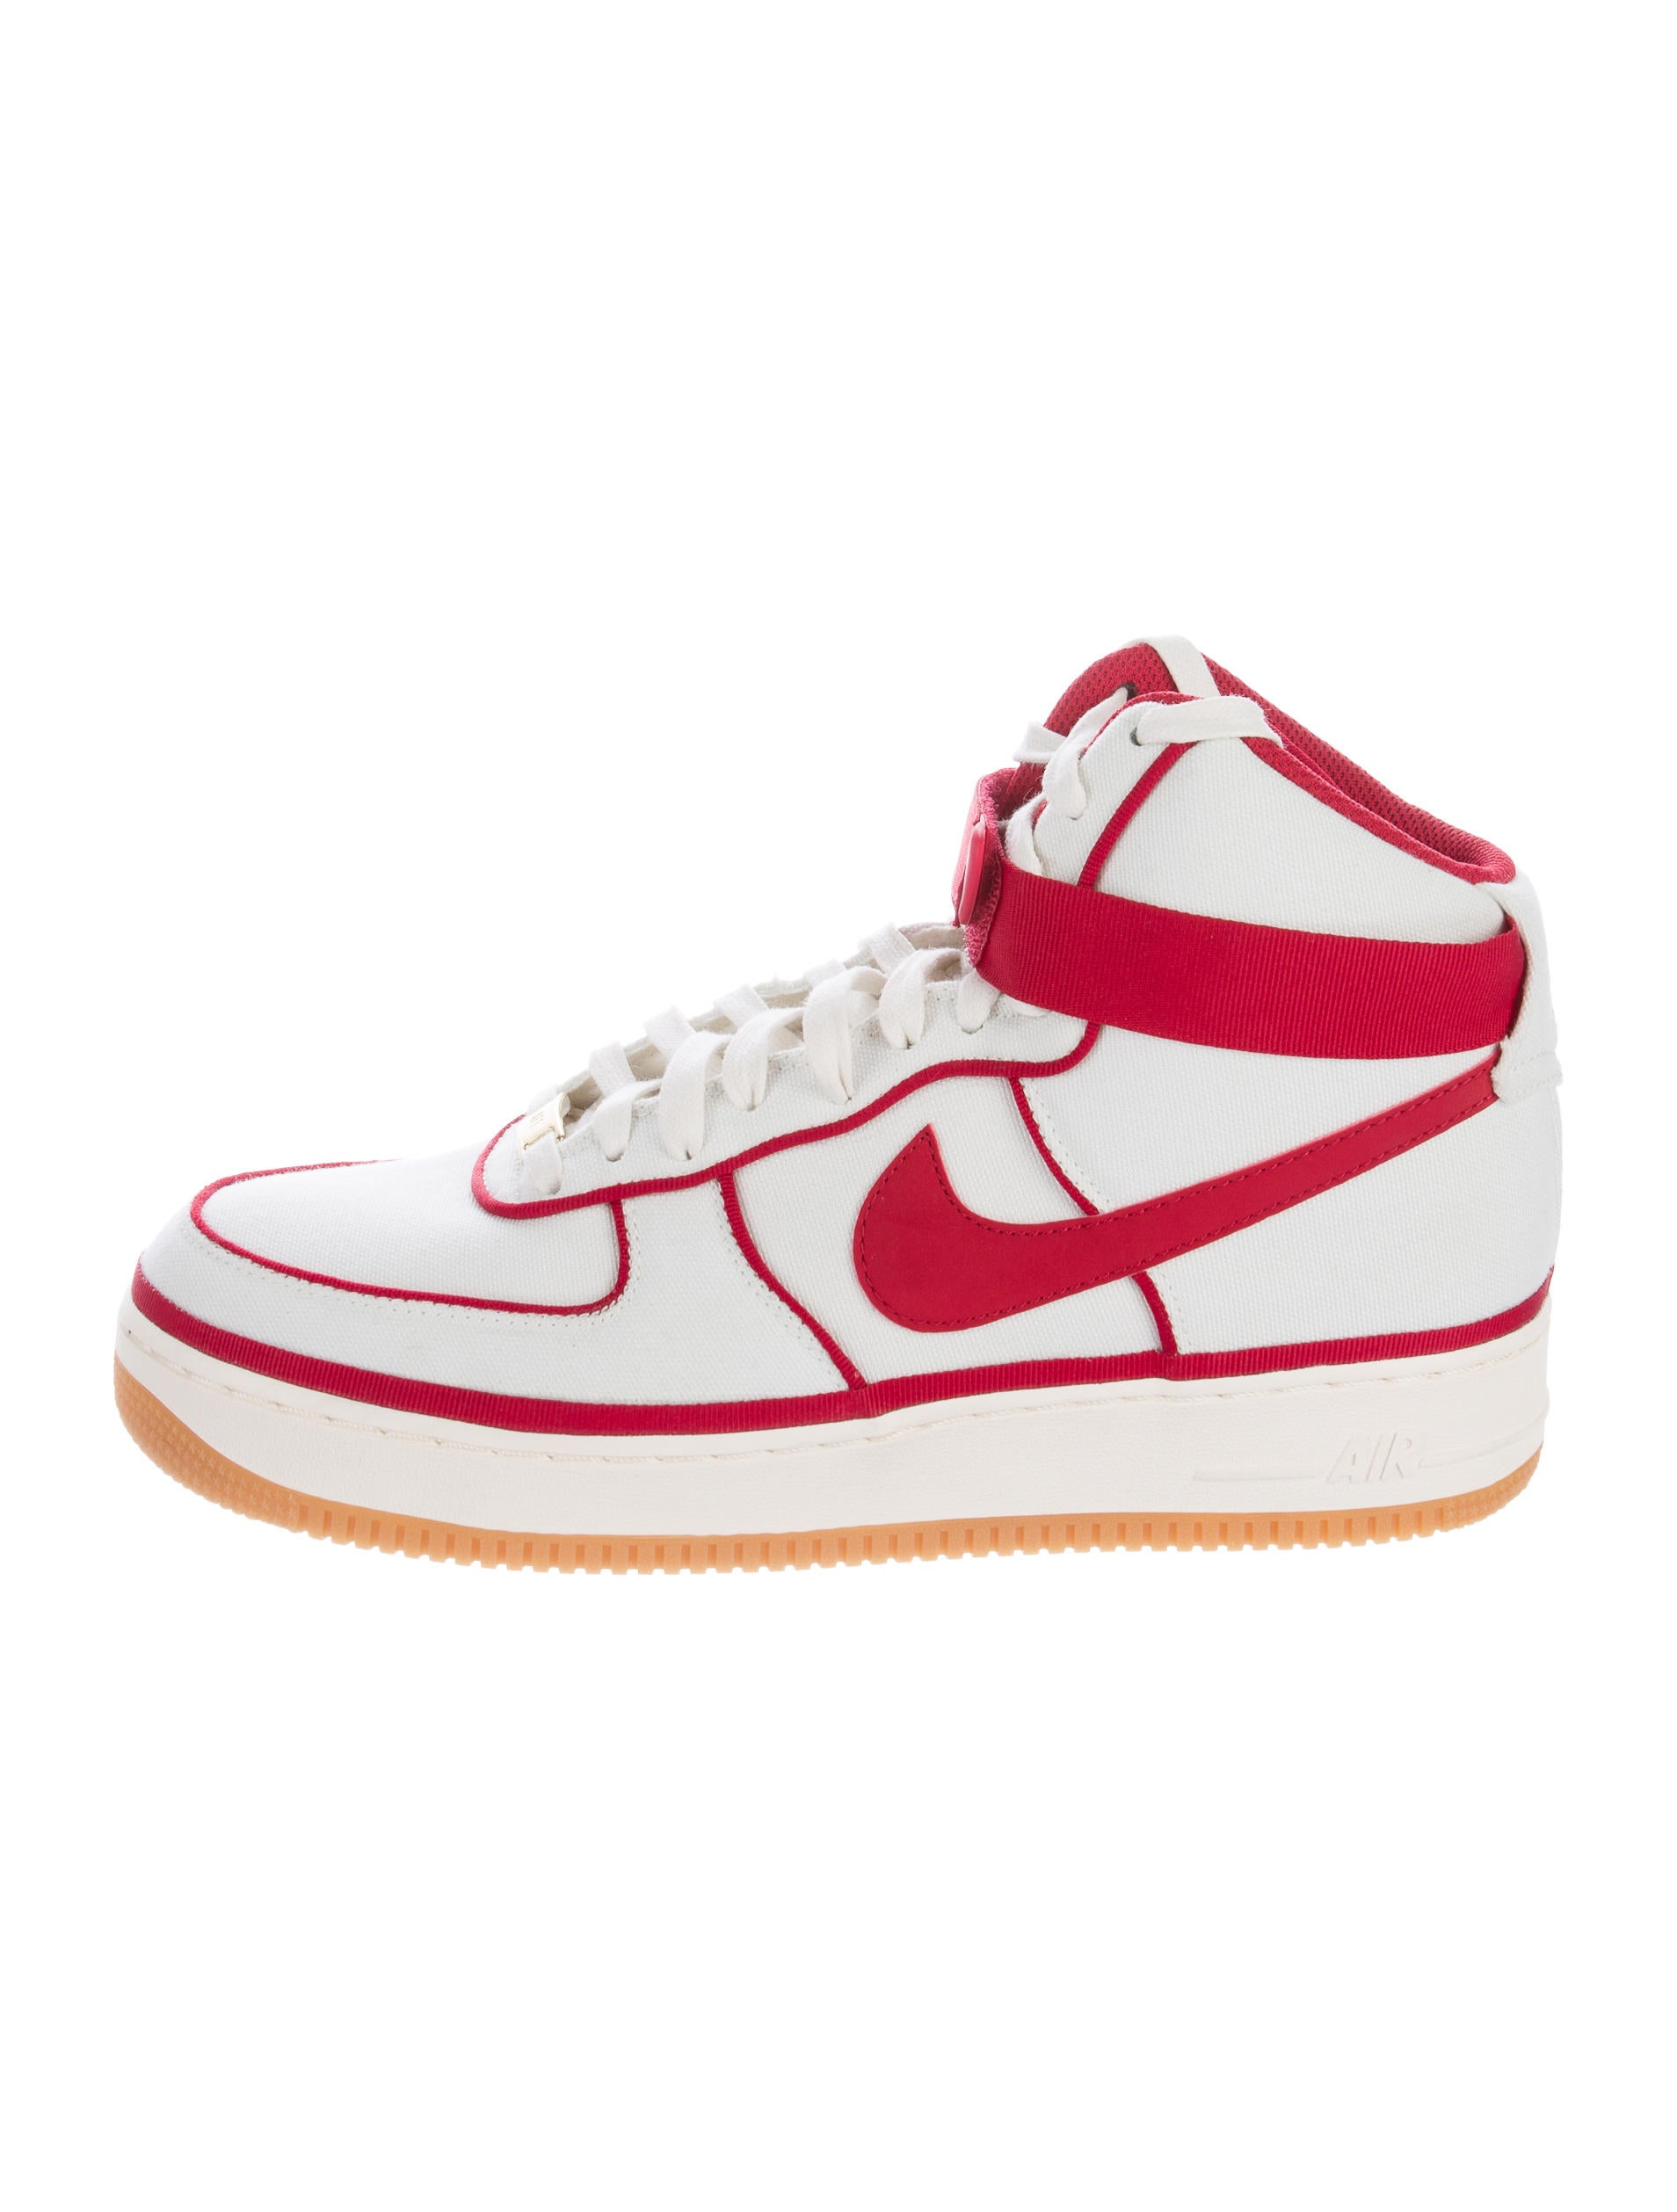 nike air force 1 high 39 07 sneakers w tags shoes wu221086 the realreal. Black Bedroom Furniture Sets. Home Design Ideas